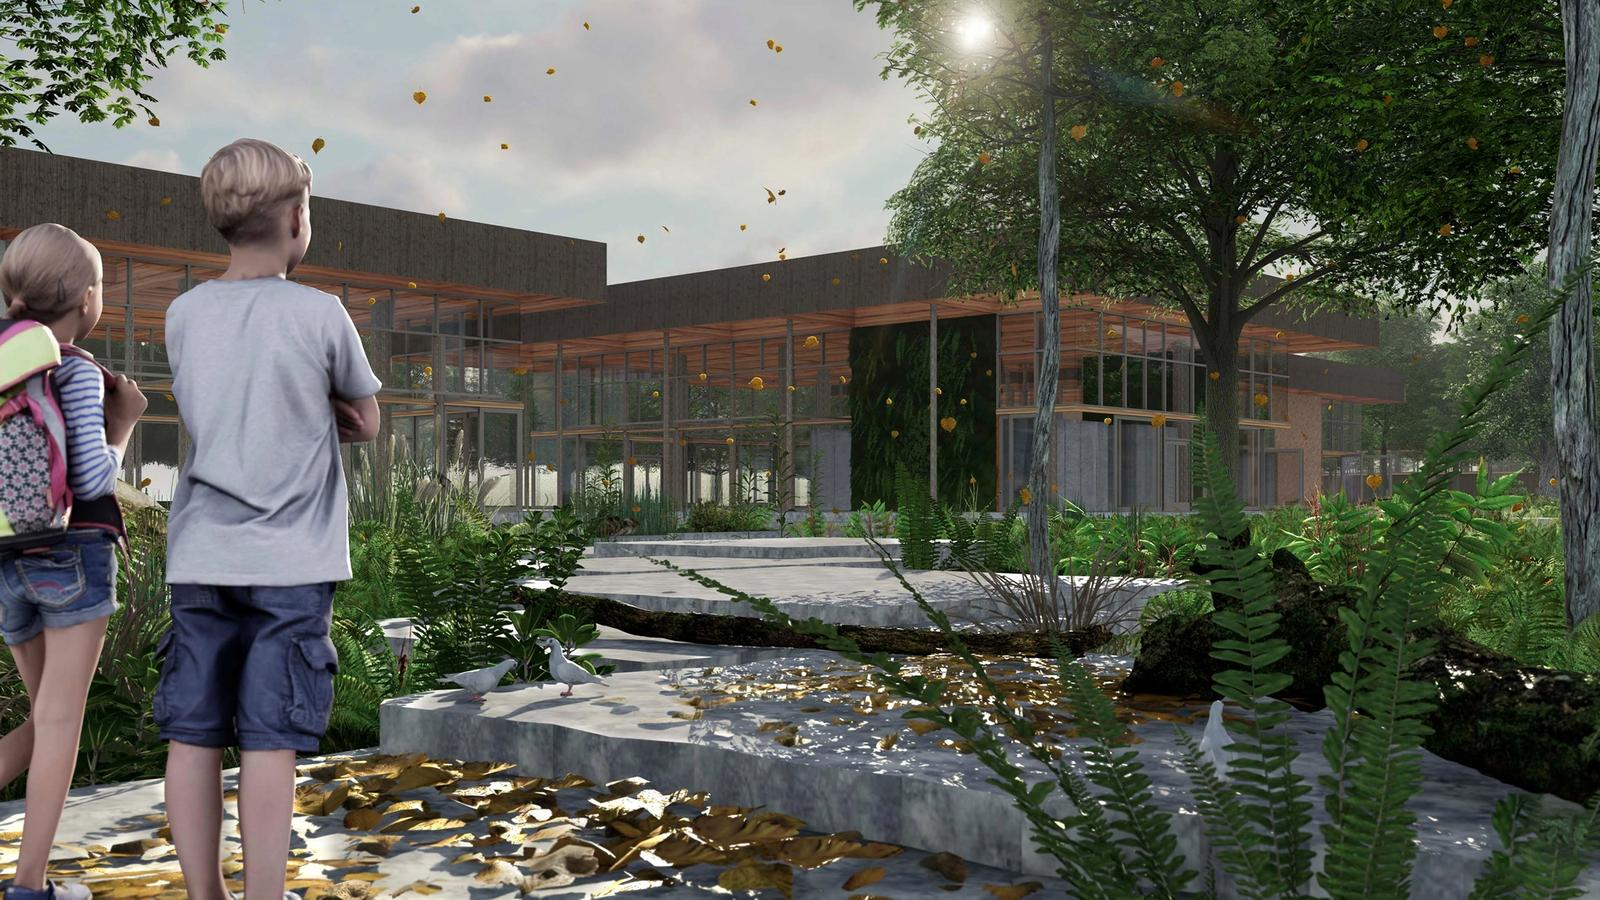 Eco-Tecture - Unifying Ecology with Architecture - Stone Path Towards Building